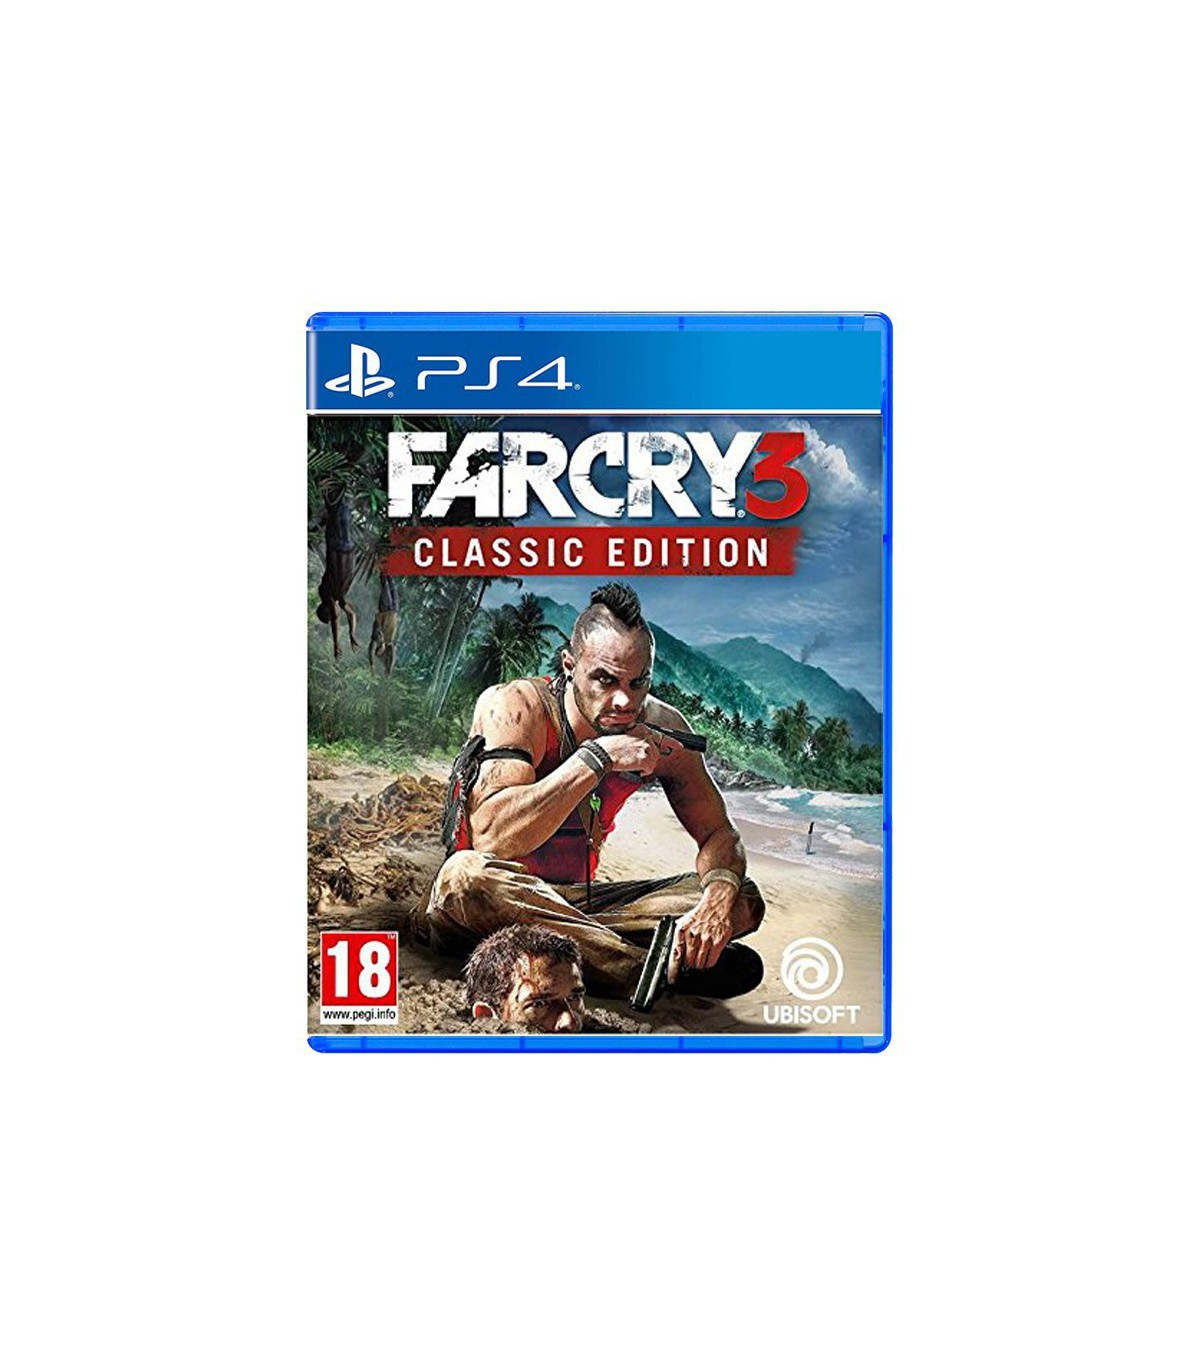 بازی Far Cry 3 Classic Edition - پلی استیشن 4